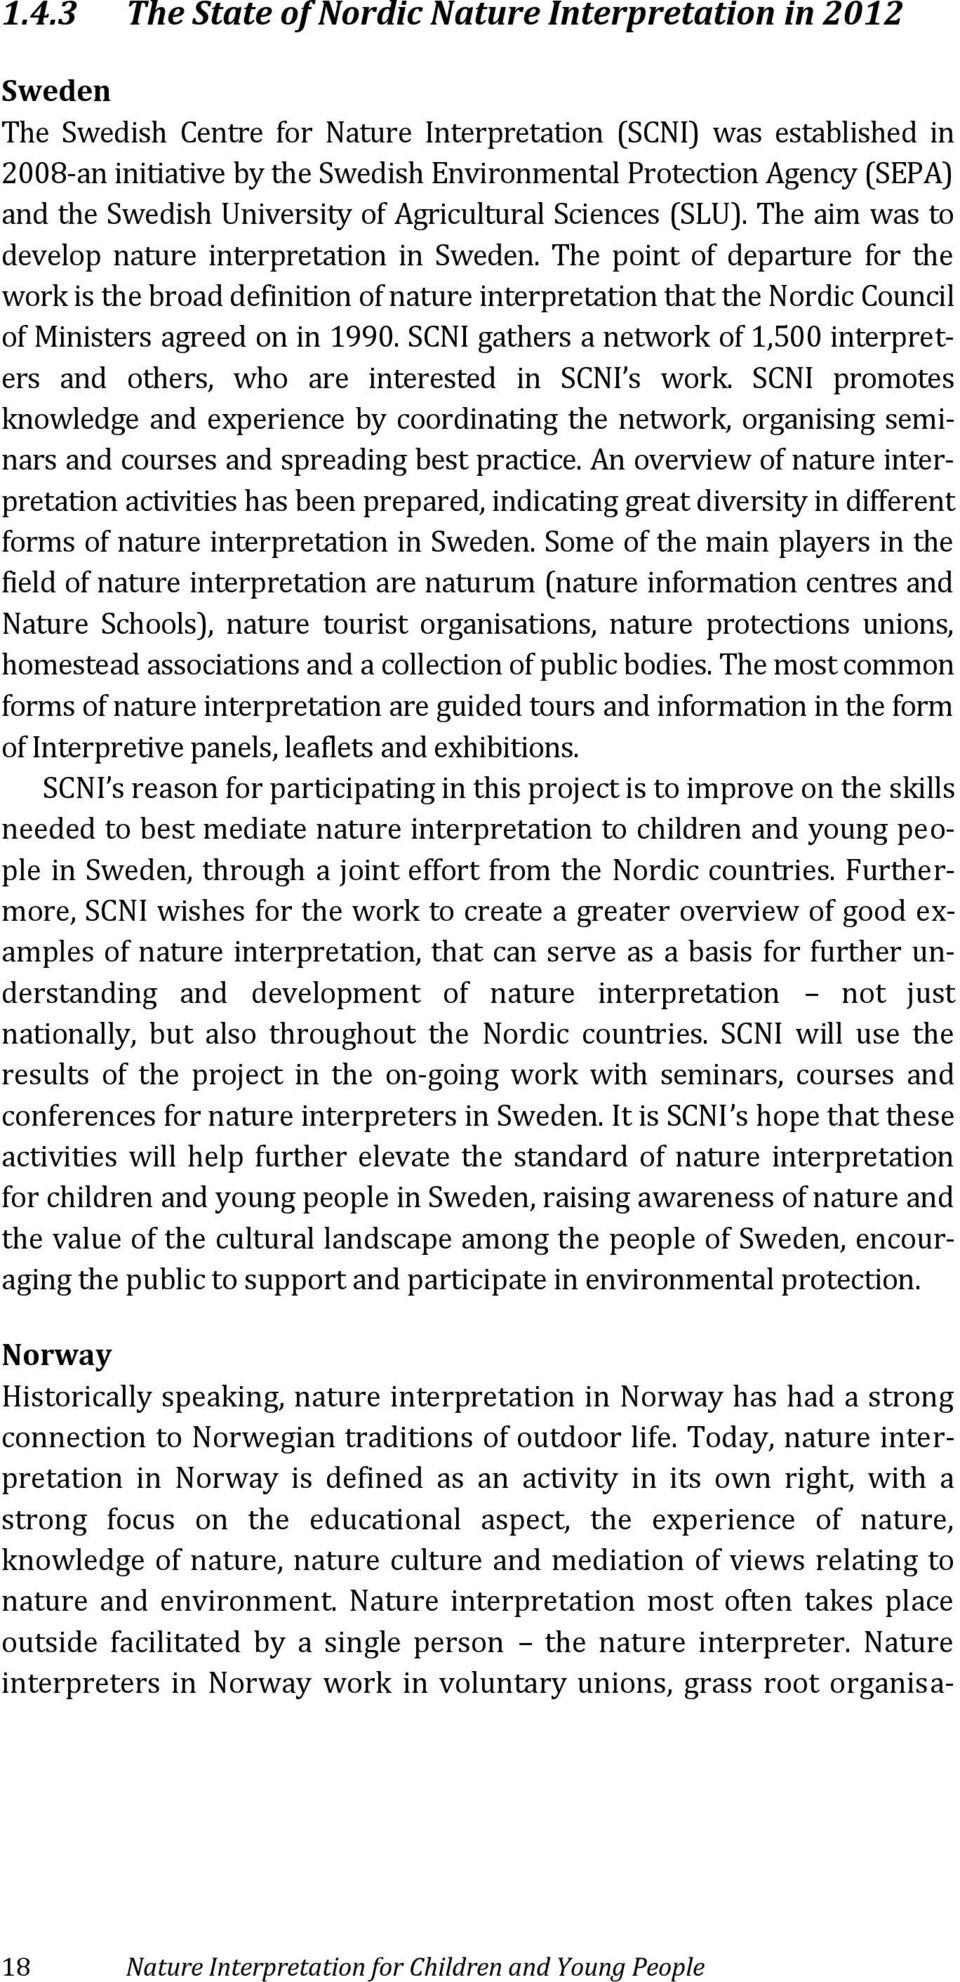 The point of departure for the work is the broad definition of nature interpretation that the Nordic Council of Ministers agreed on in 1990.